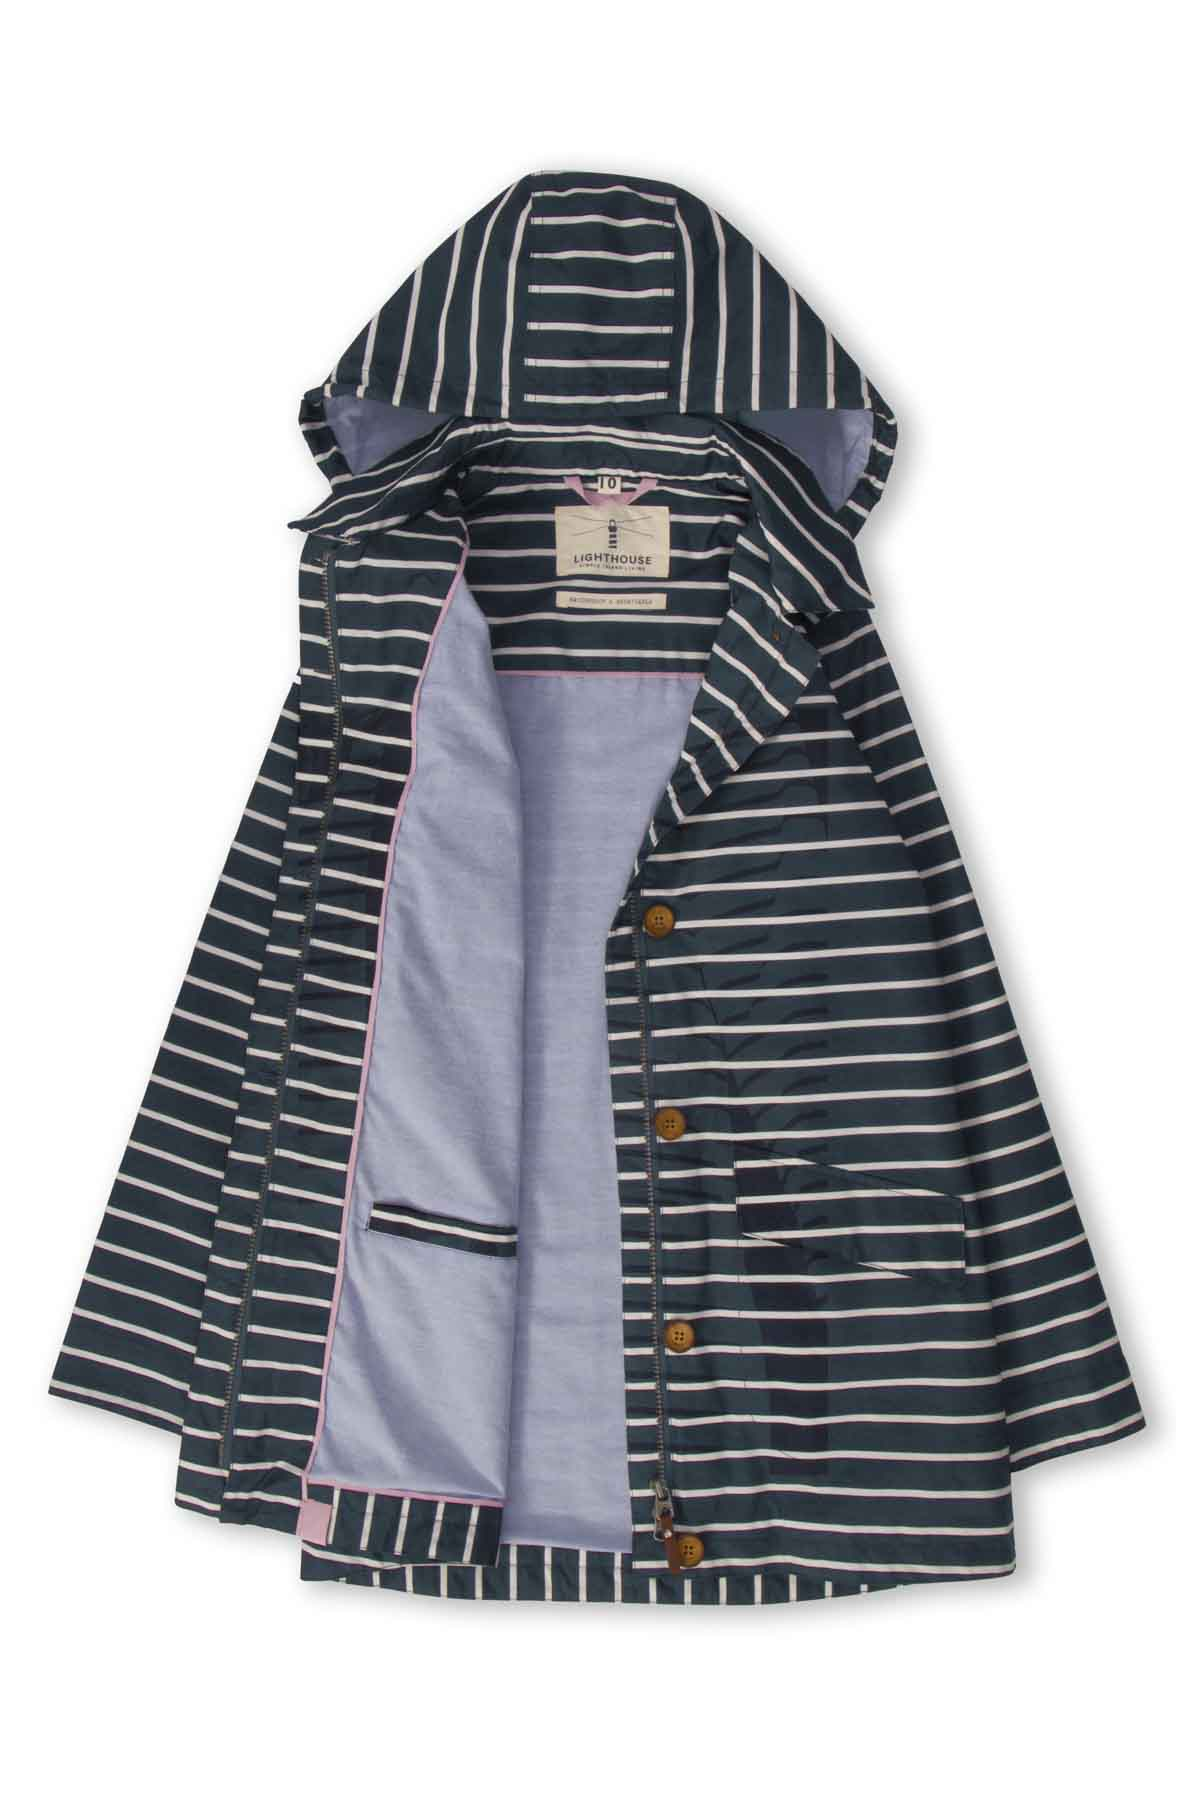 Lighthouse Abby Women's Waterproof Jacket - Midnight Stripe